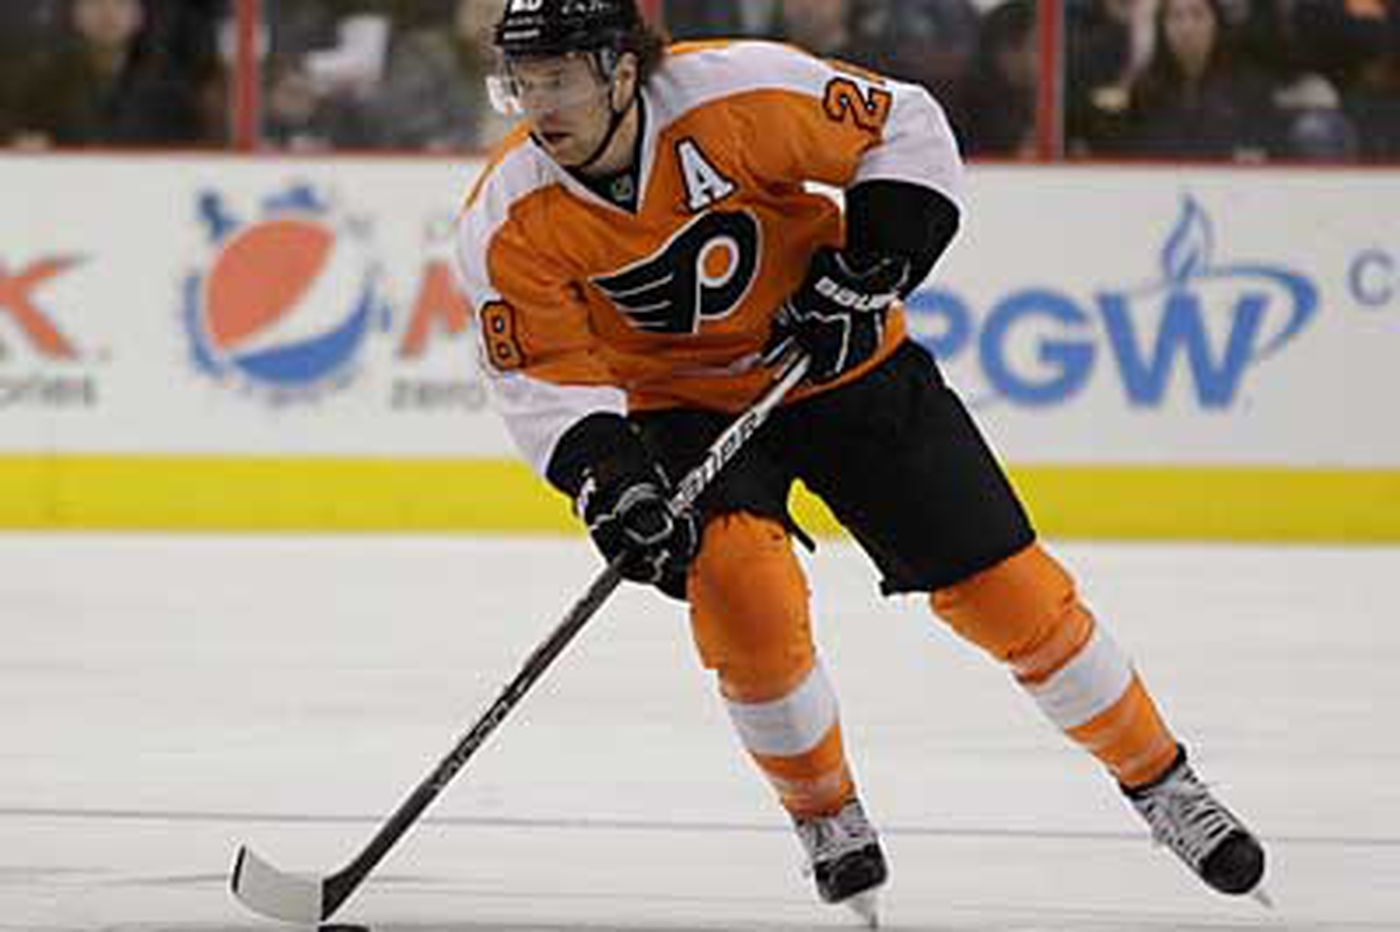 Flyers' Giroux remains sidelined with concussion